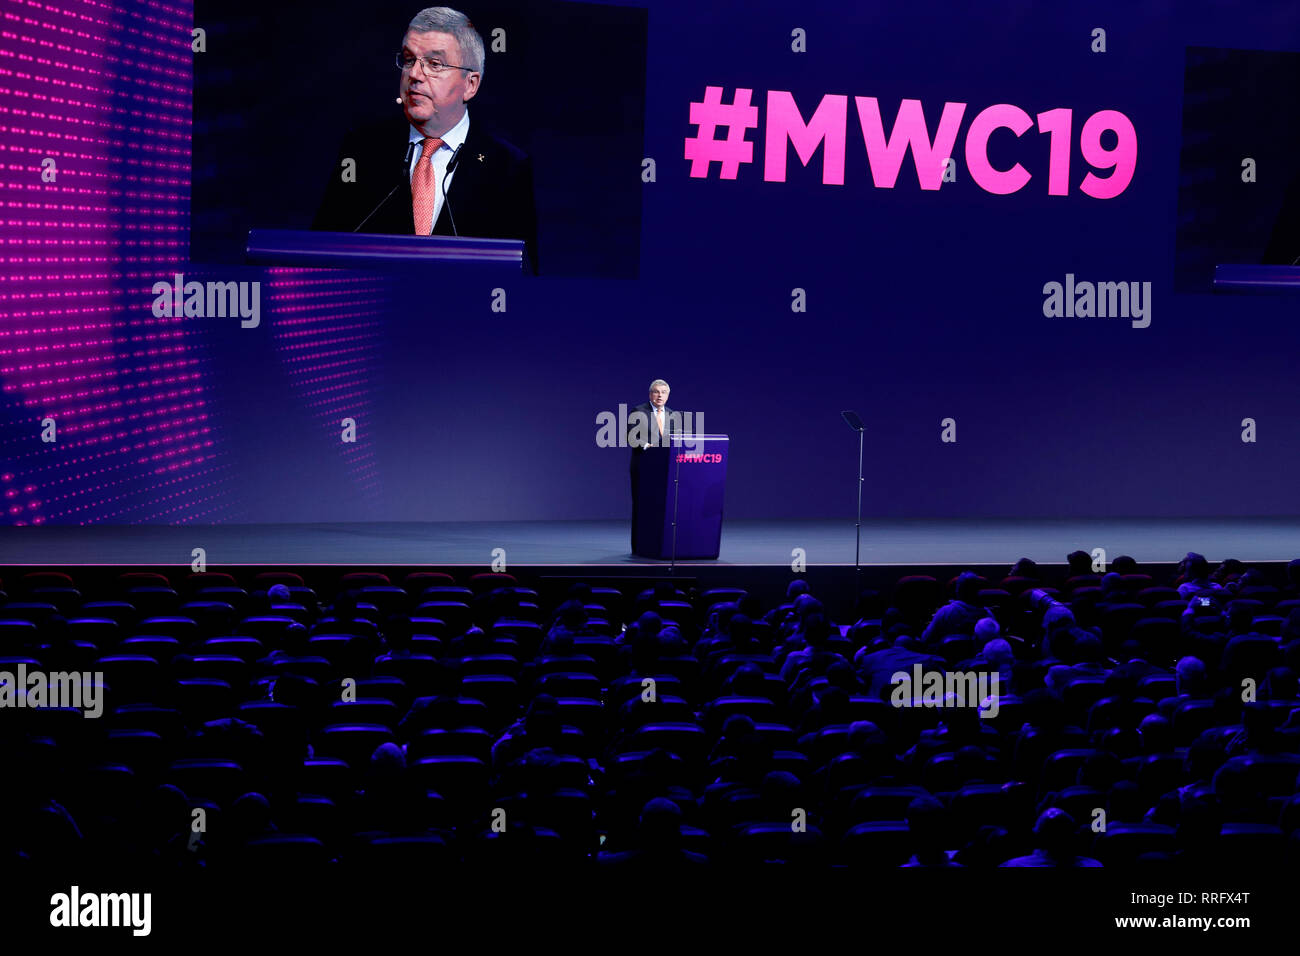 Barcelona, Spain. 26th Feb, 2019. Thomas Bach, President of the International Olympic Committee, speaks at an event at Mobile World Congress. Credit: Clara Margais/dpa/Alamy Live News Stock Photo